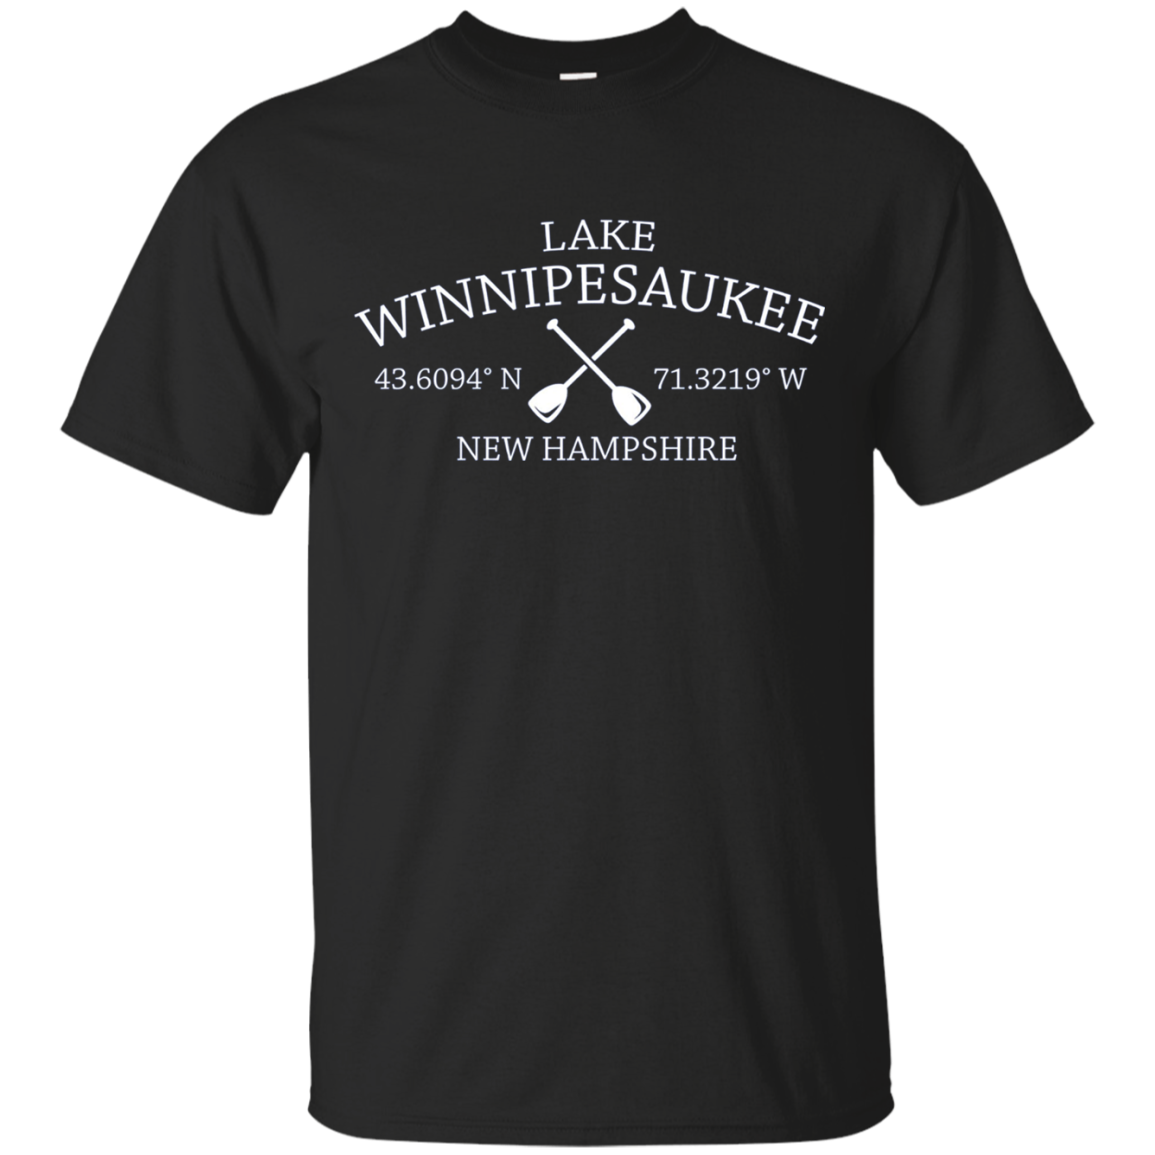 Classic Lake Winnipesaukee Long Sleeve Shirt - New Hampshire